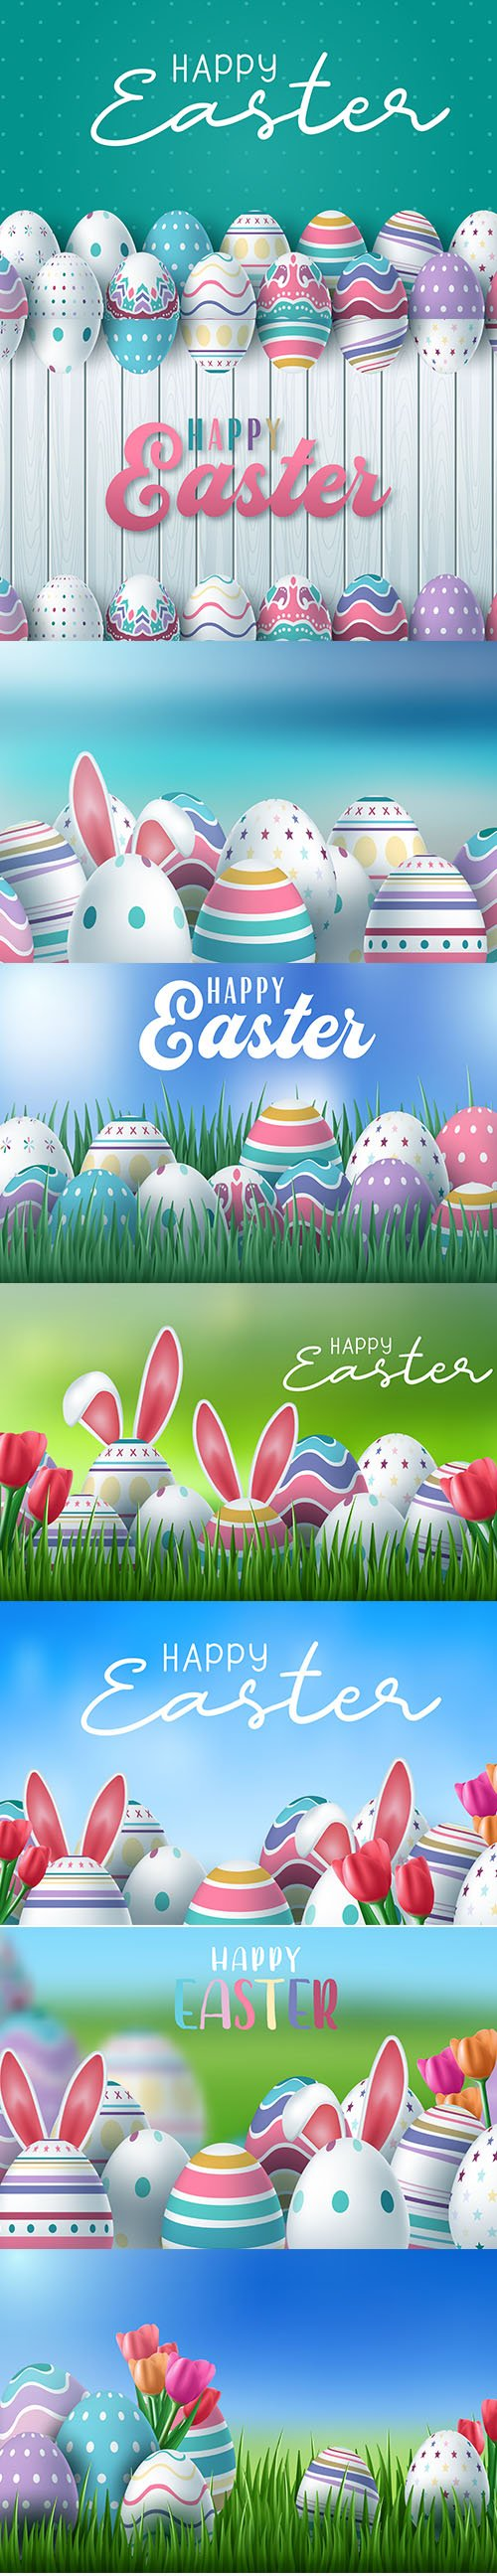 Happy Easter Background with Painted Egg